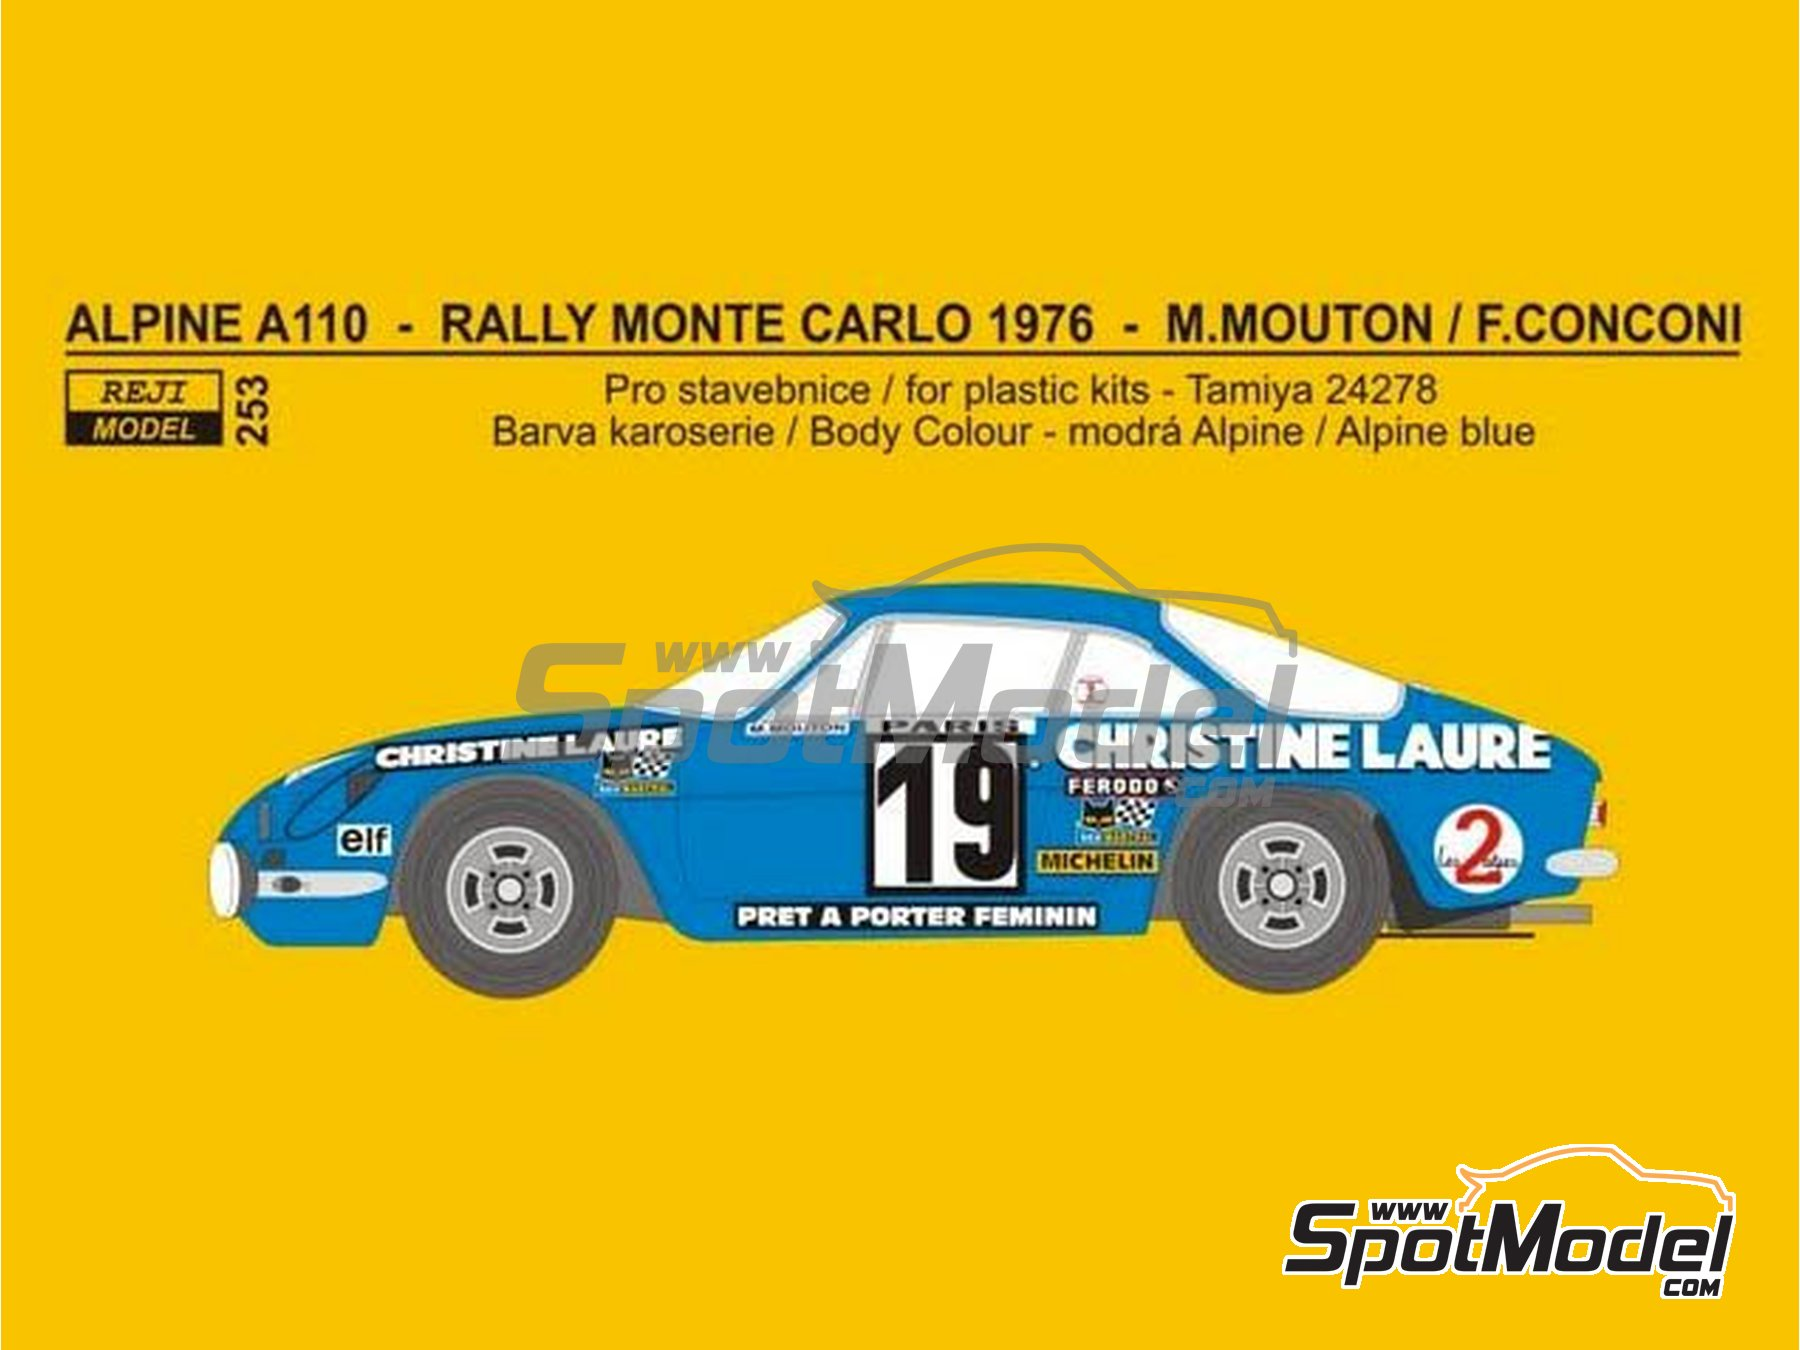 Image 1: Renault Alpine A110 Christine Laure - Montecarlo Rally 1976 | Marking / livery in 1/24 scale manufactured by Reji Model (ref. REJI-253)